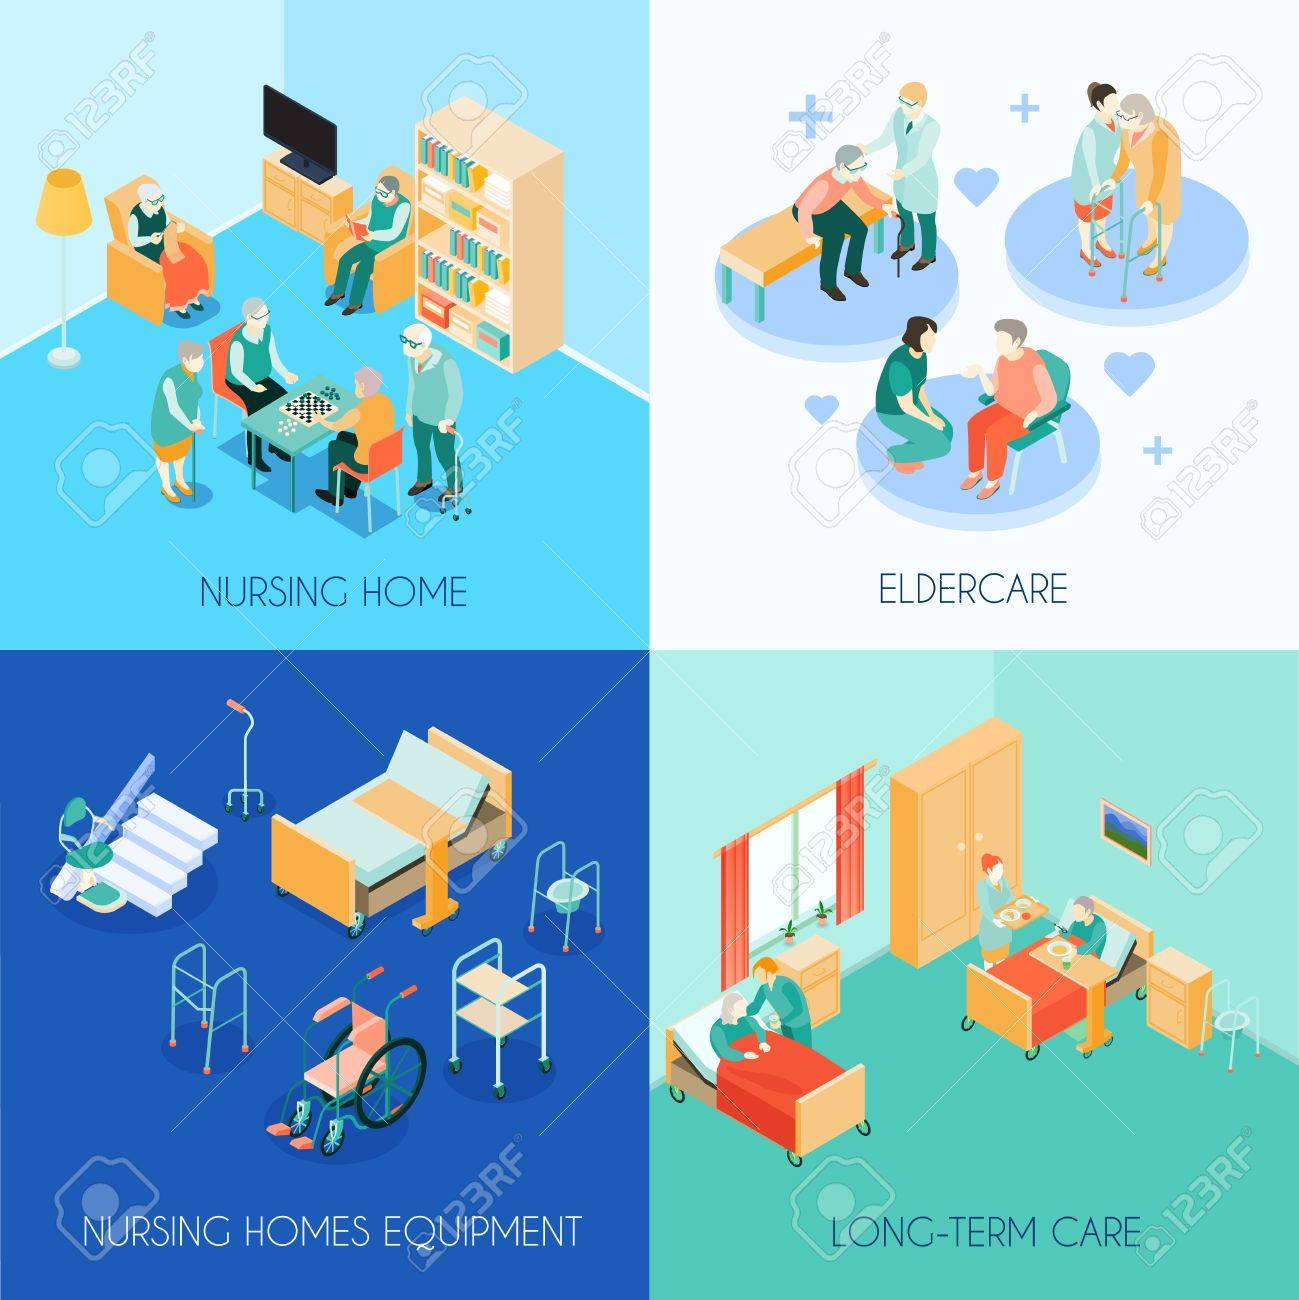 Nursing home eldercare concept 4 isometric icons square with long-term care unit activities isolated vector illustration - 86092989